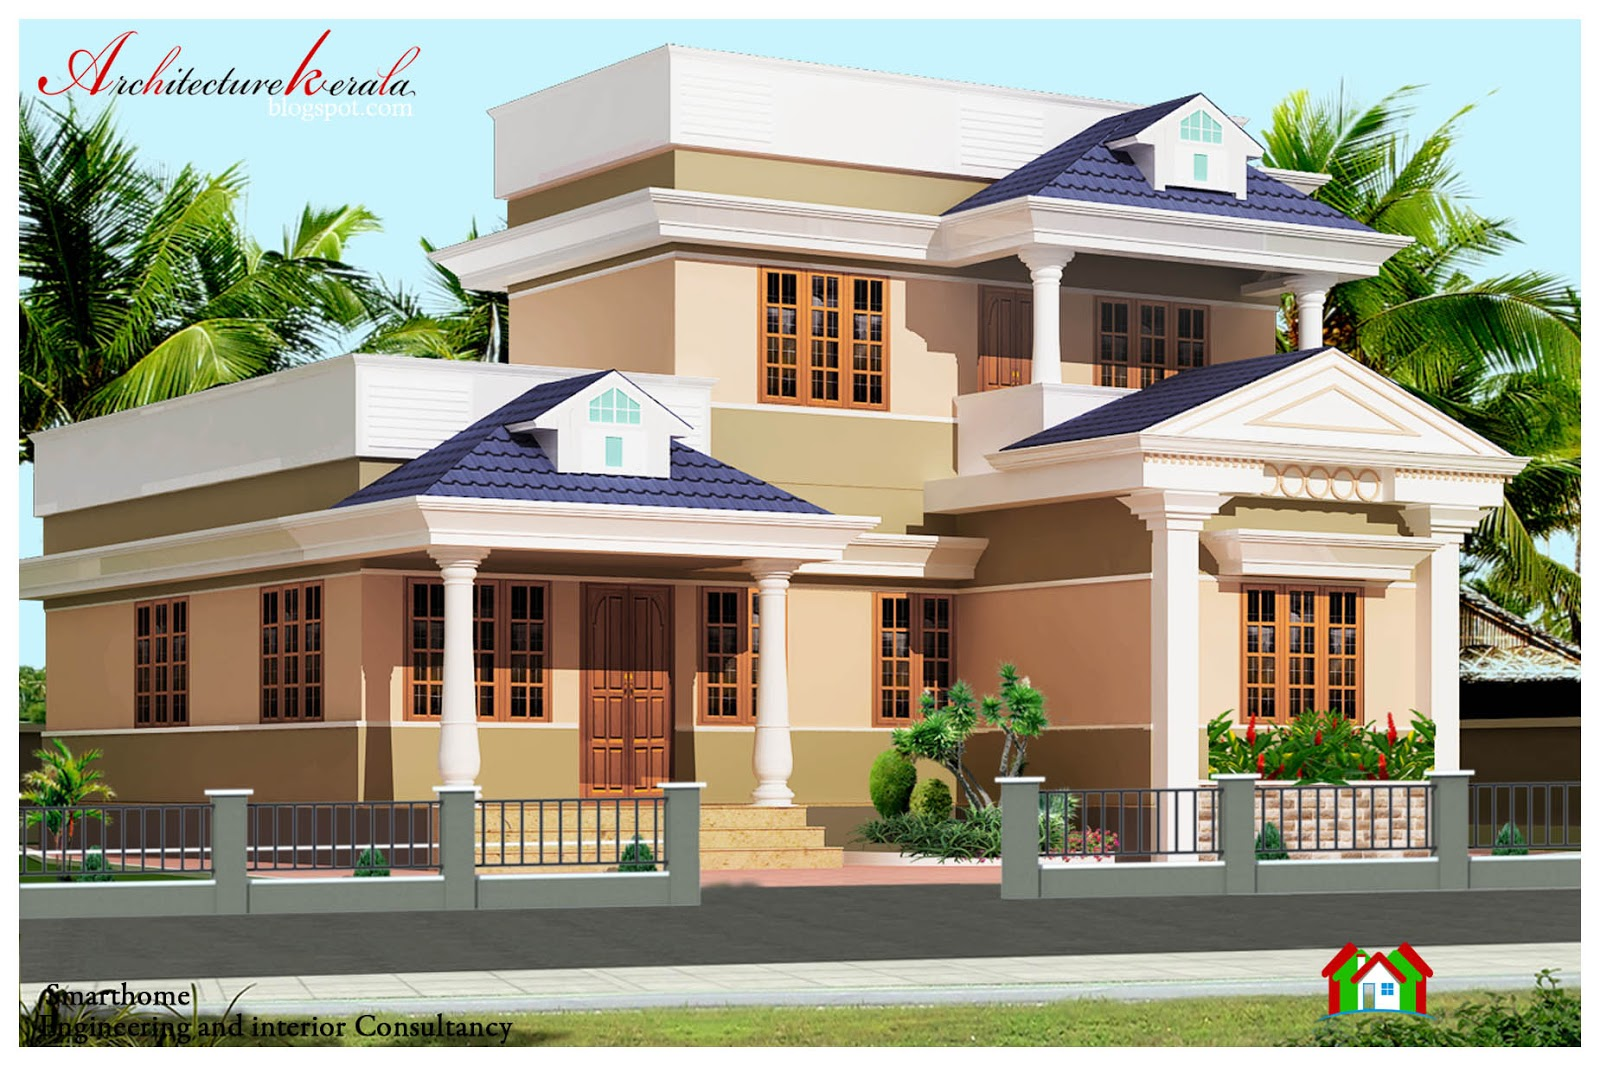 Architecture kerala 1000 sq ft kerala style house plan for Kerala style home